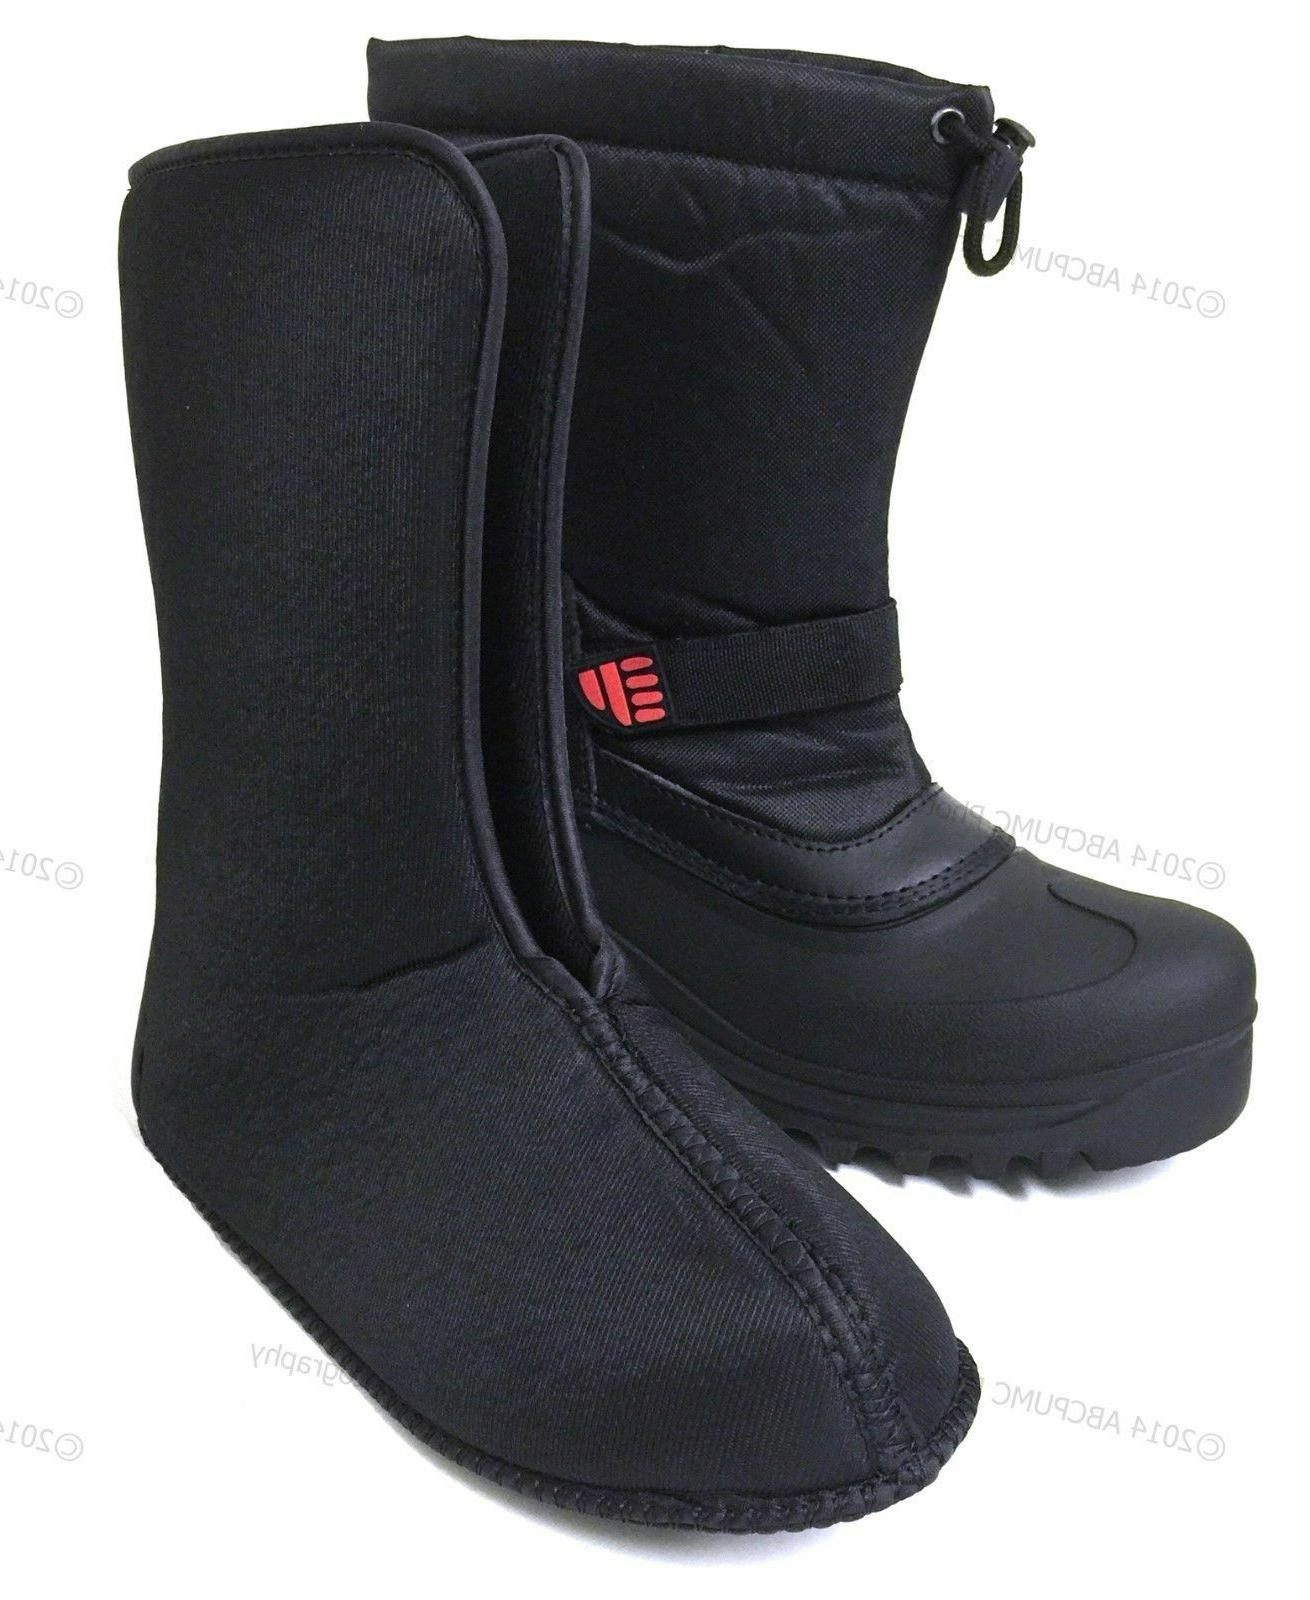 Snow Boots Thermolite Waterproof 2008